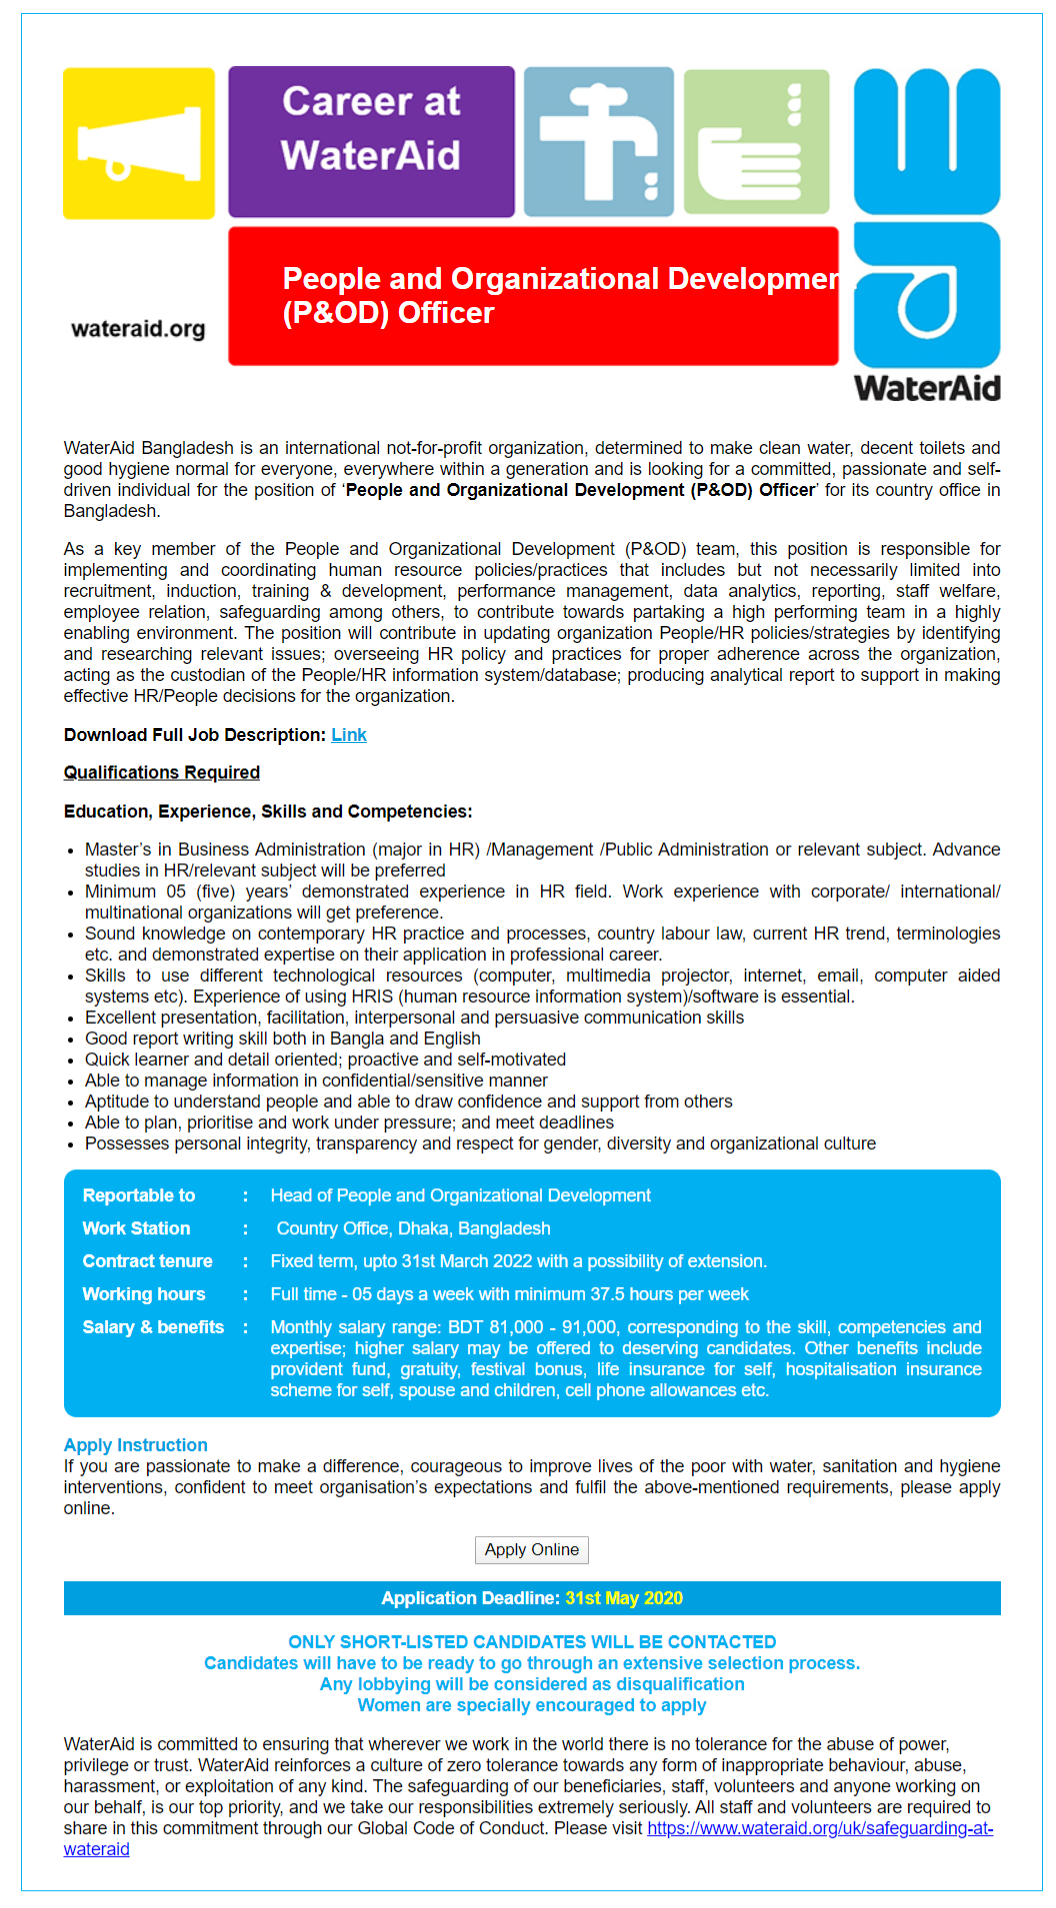 WaterAid Bangladesh Job Circular 2020